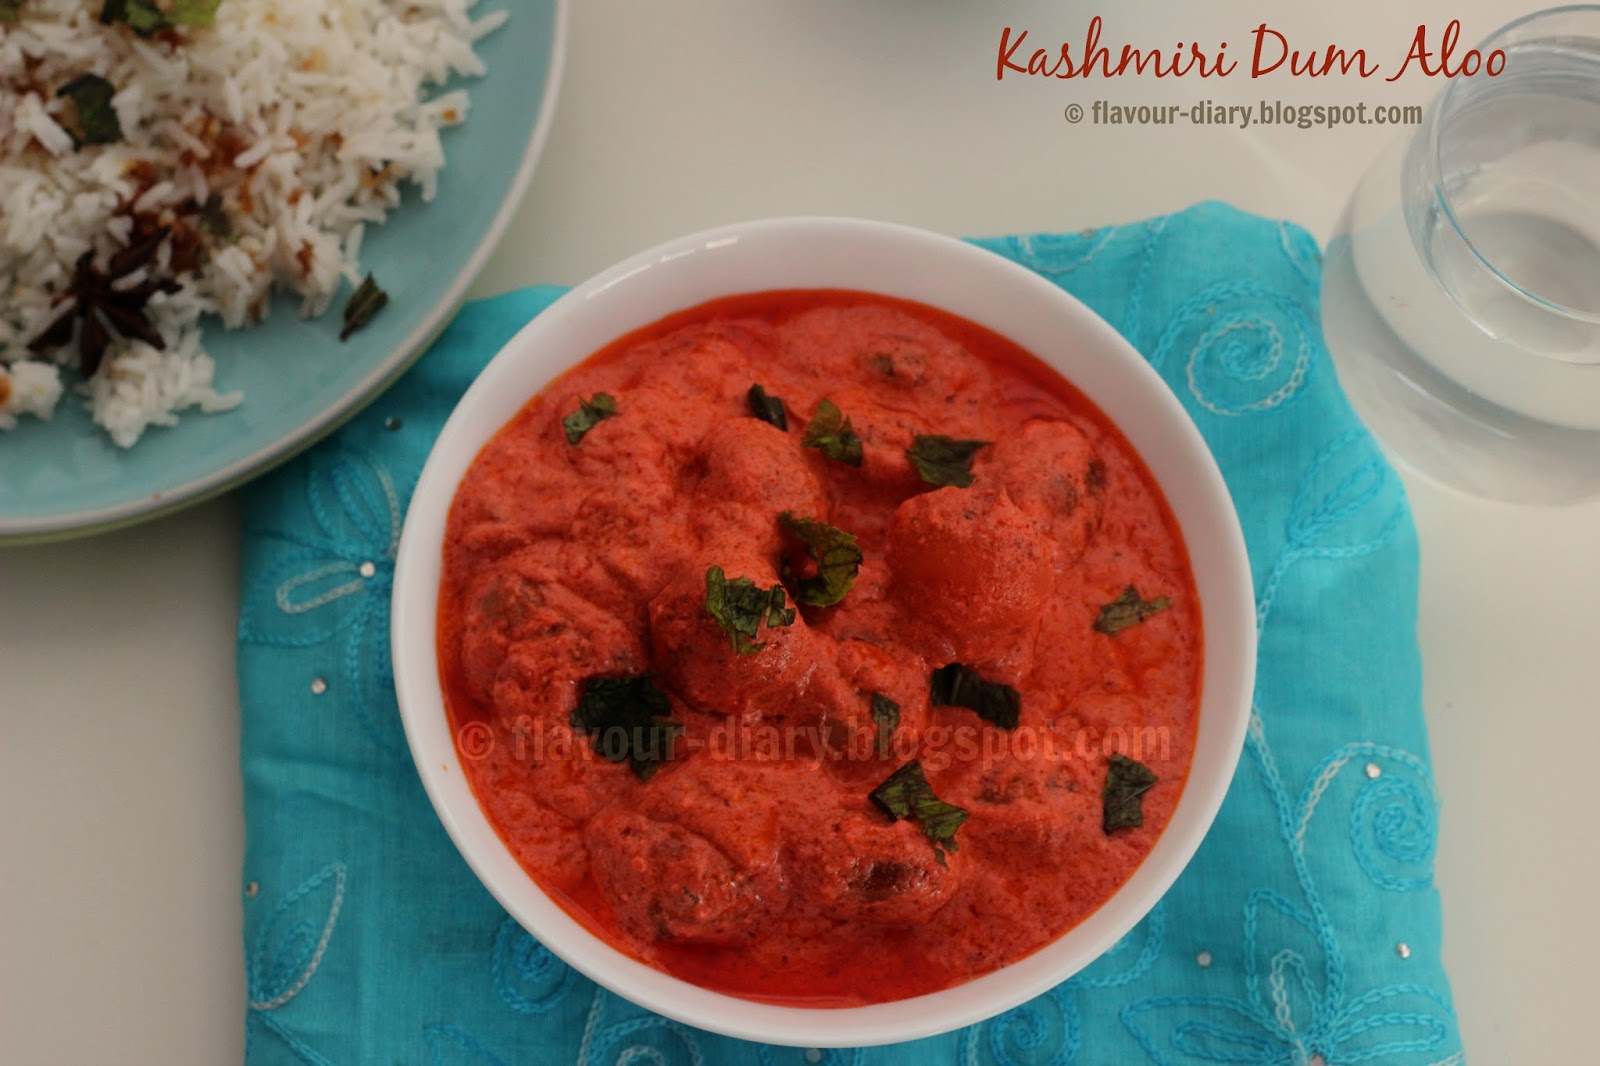 kashmiri Dum Aloo  potato in yogurt gravy